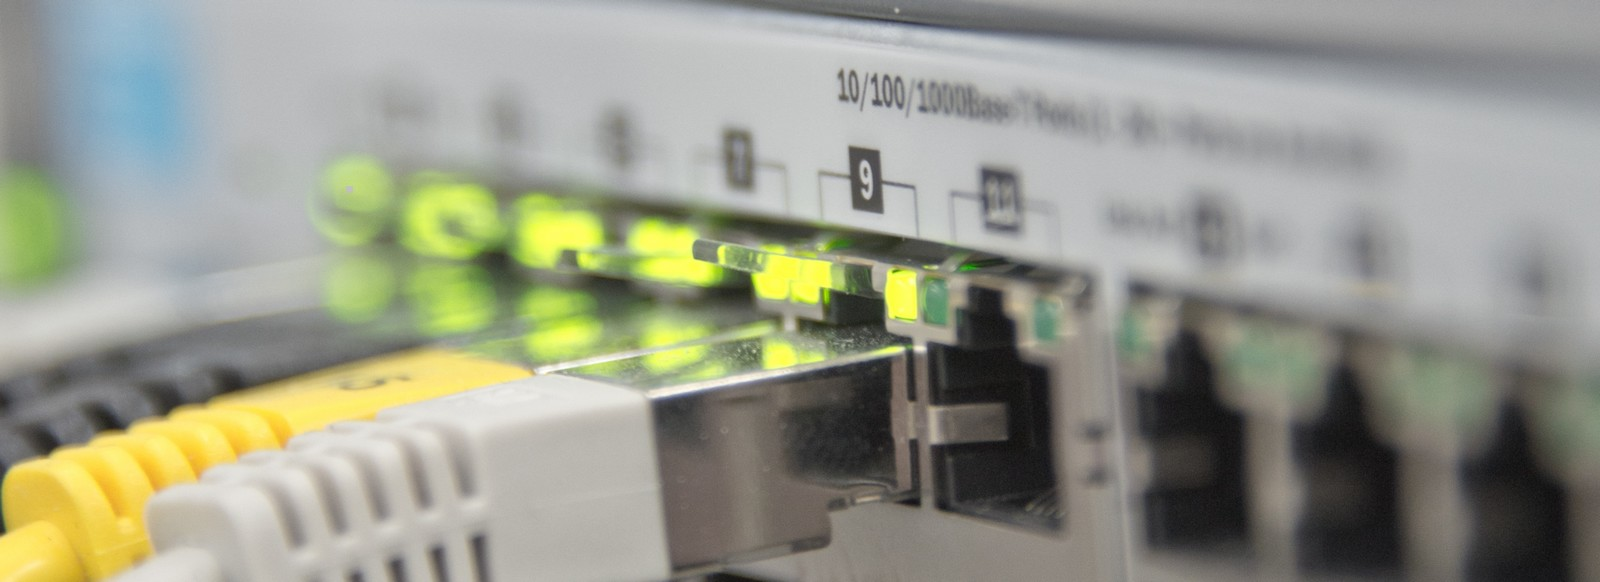 Ethernet Image by Michael Schwarzenberger from Pixabay